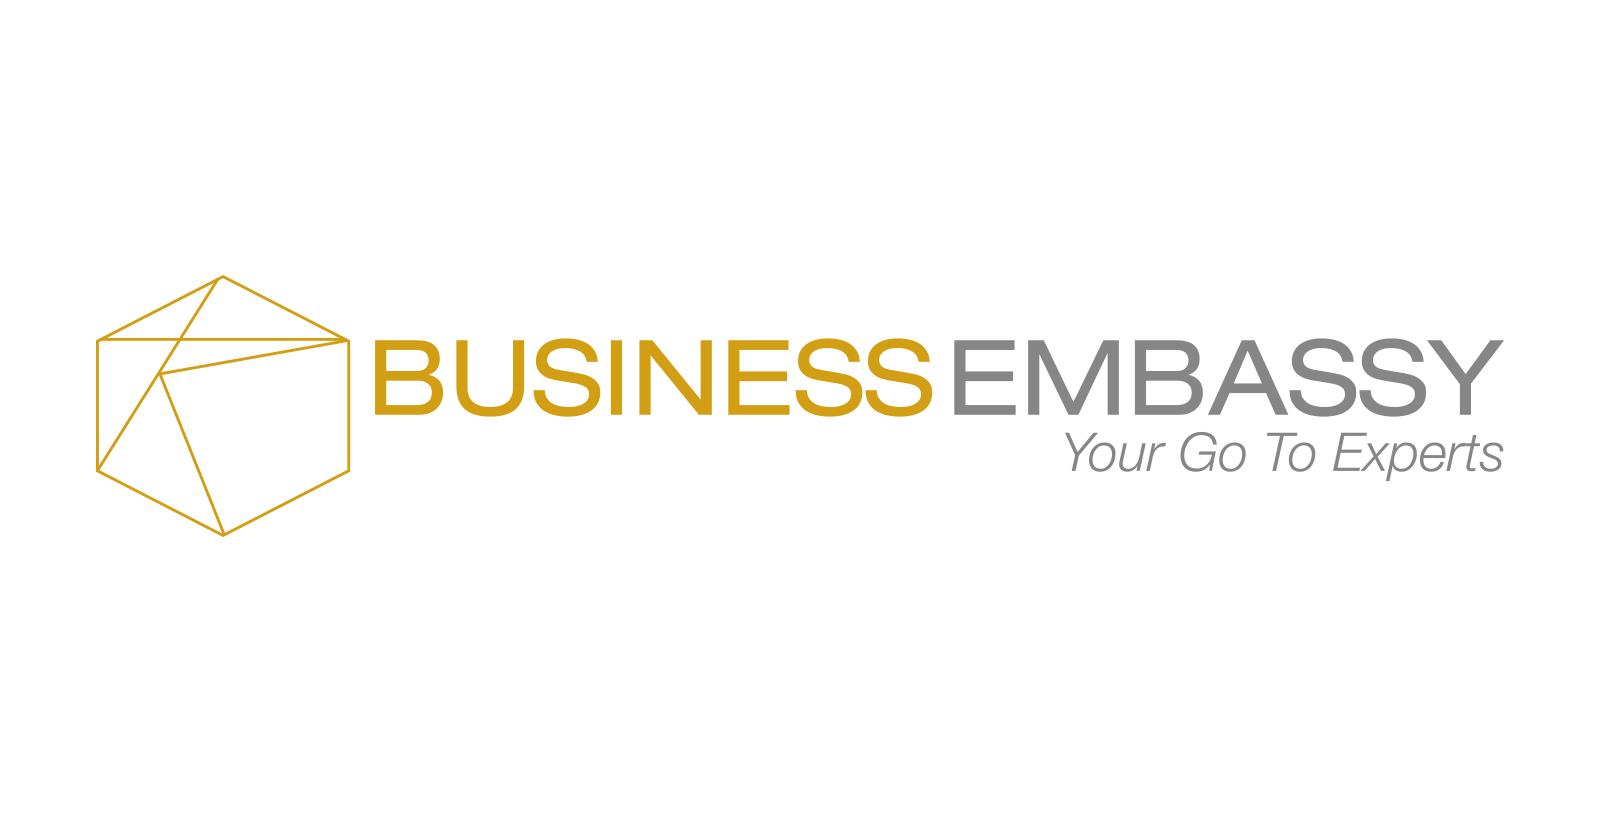 Business Embassy logo